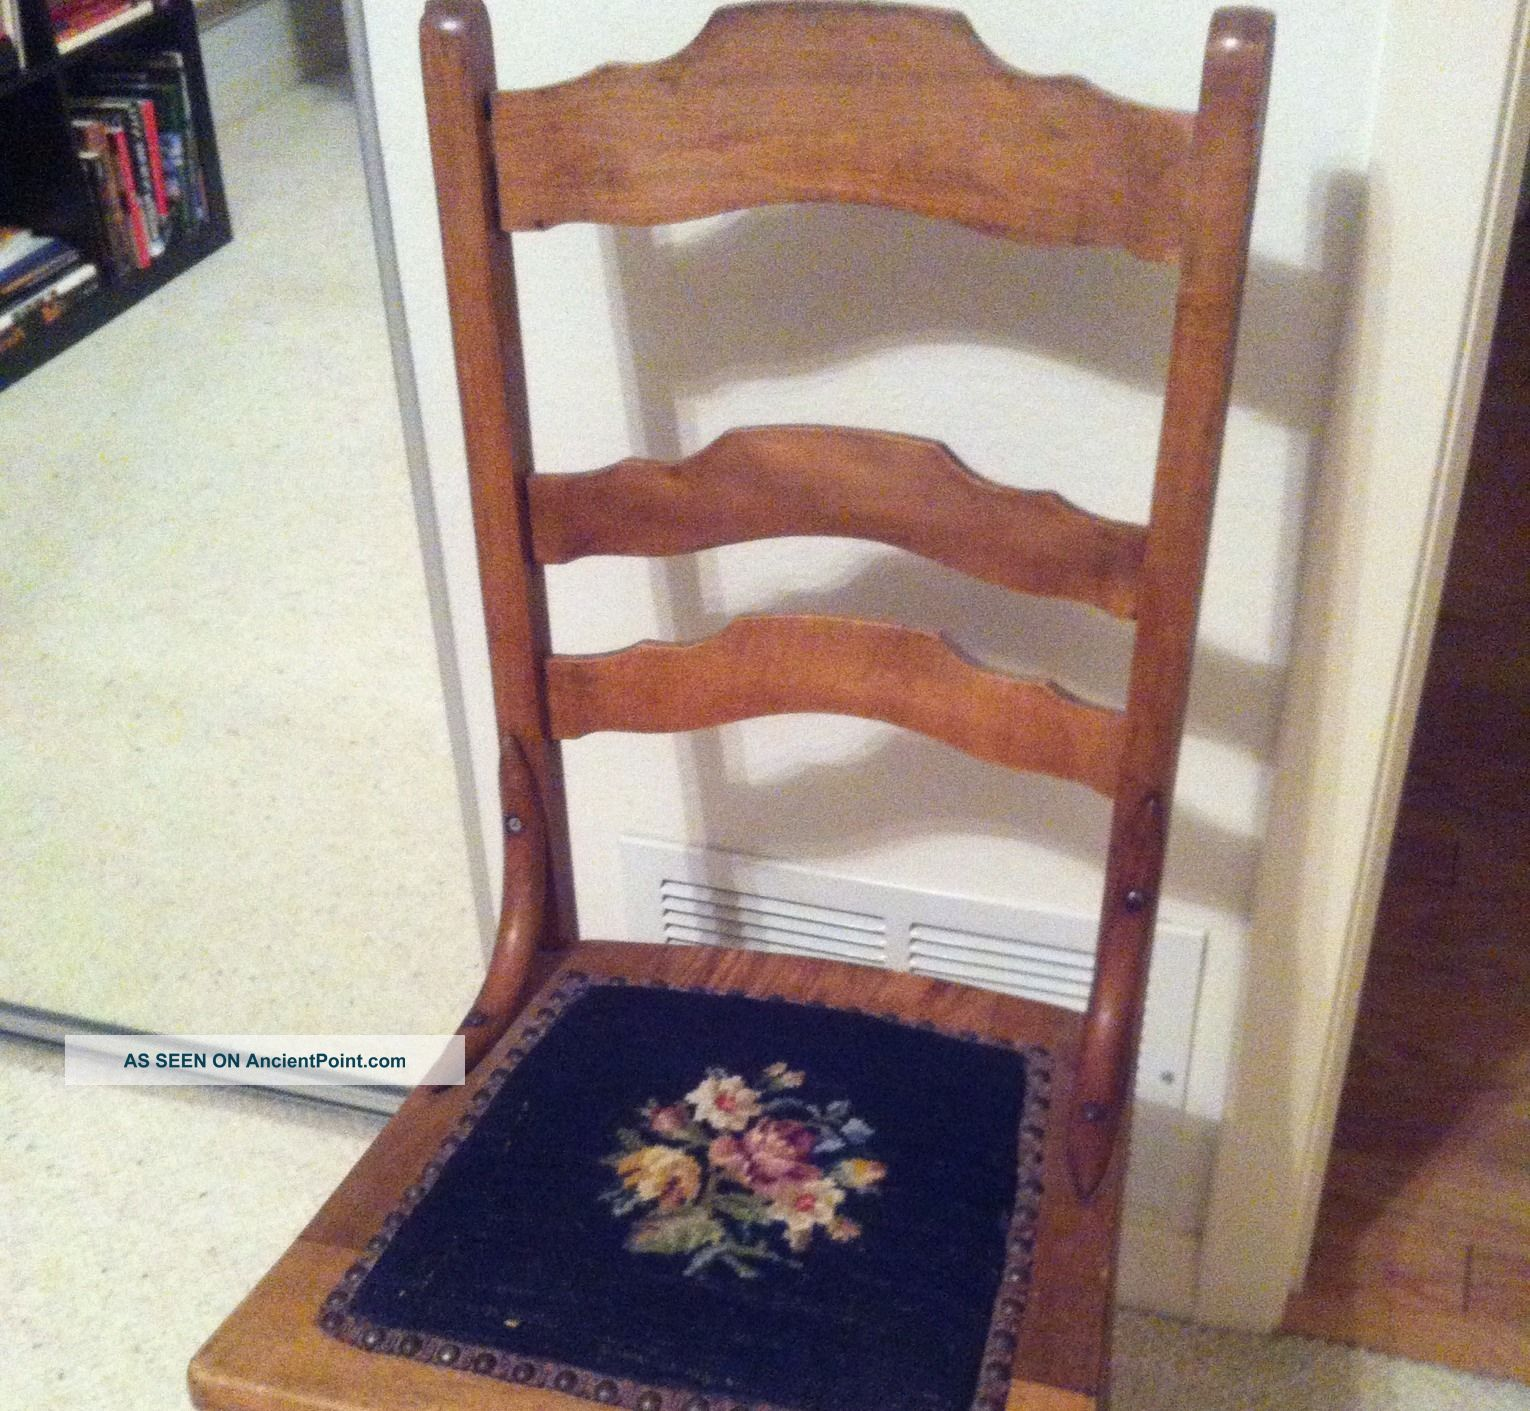 Antique Chair With Embroidered Seat 1900-1950 photo